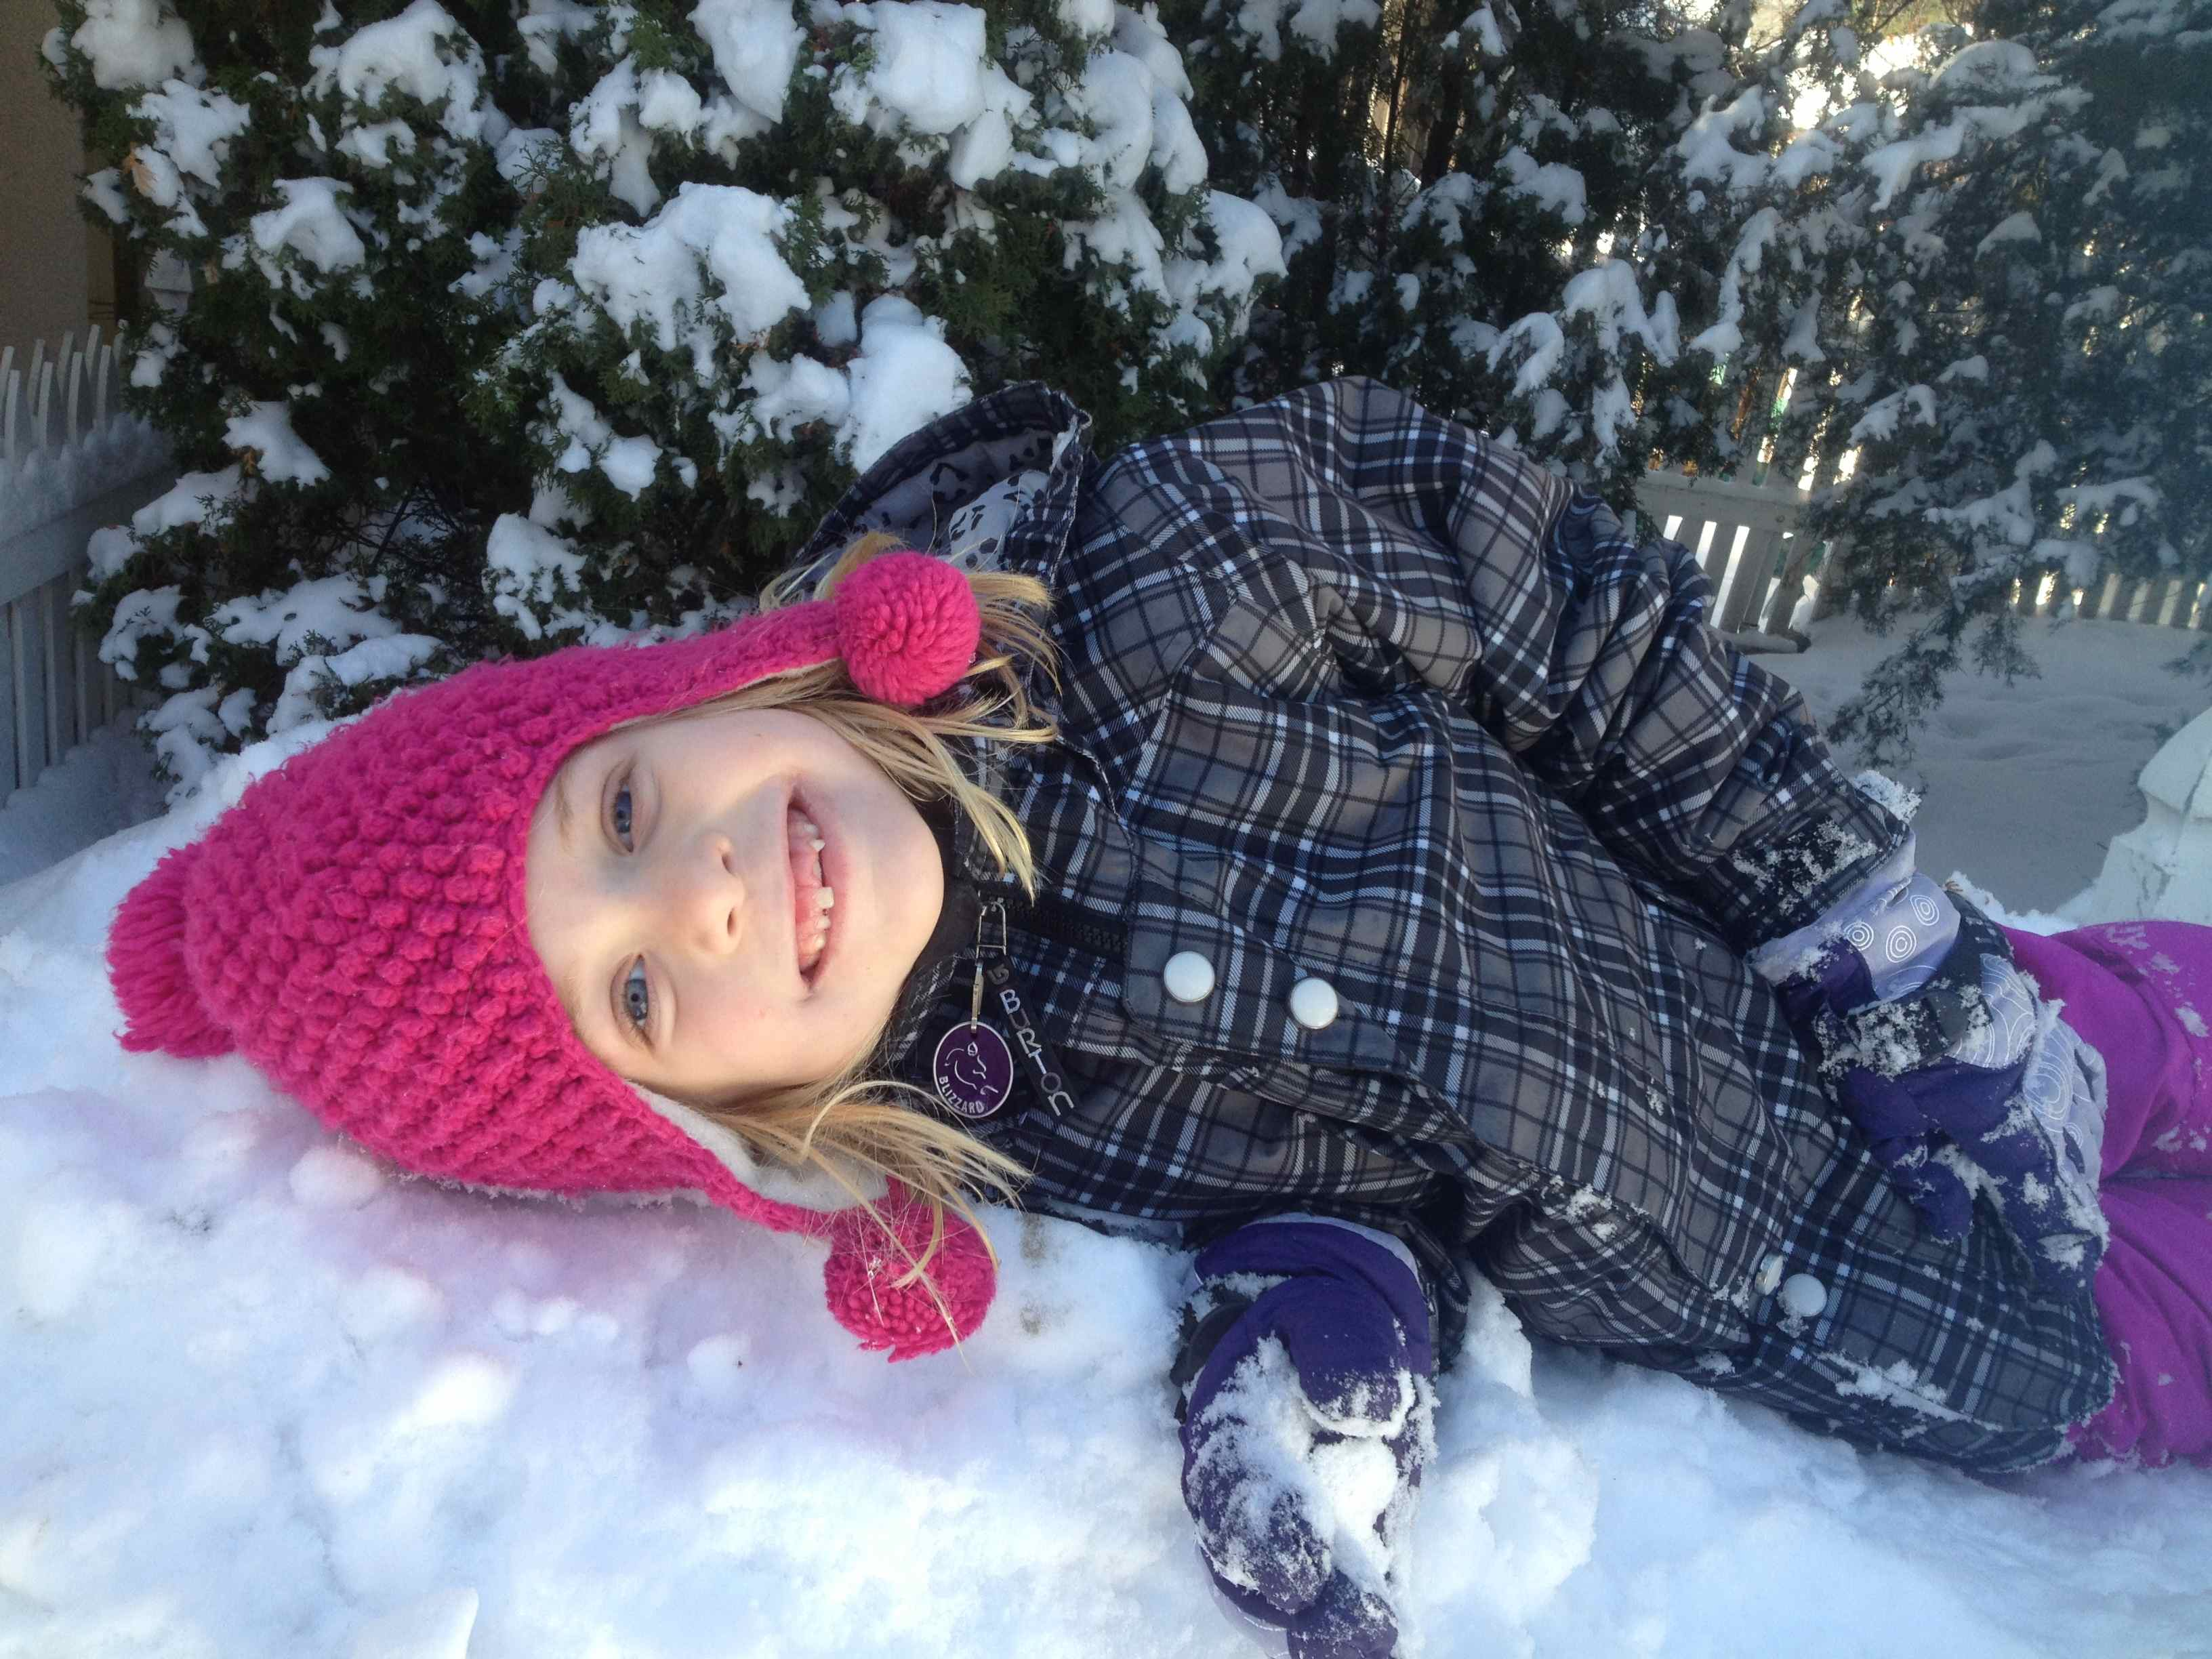 Playing in the snow.